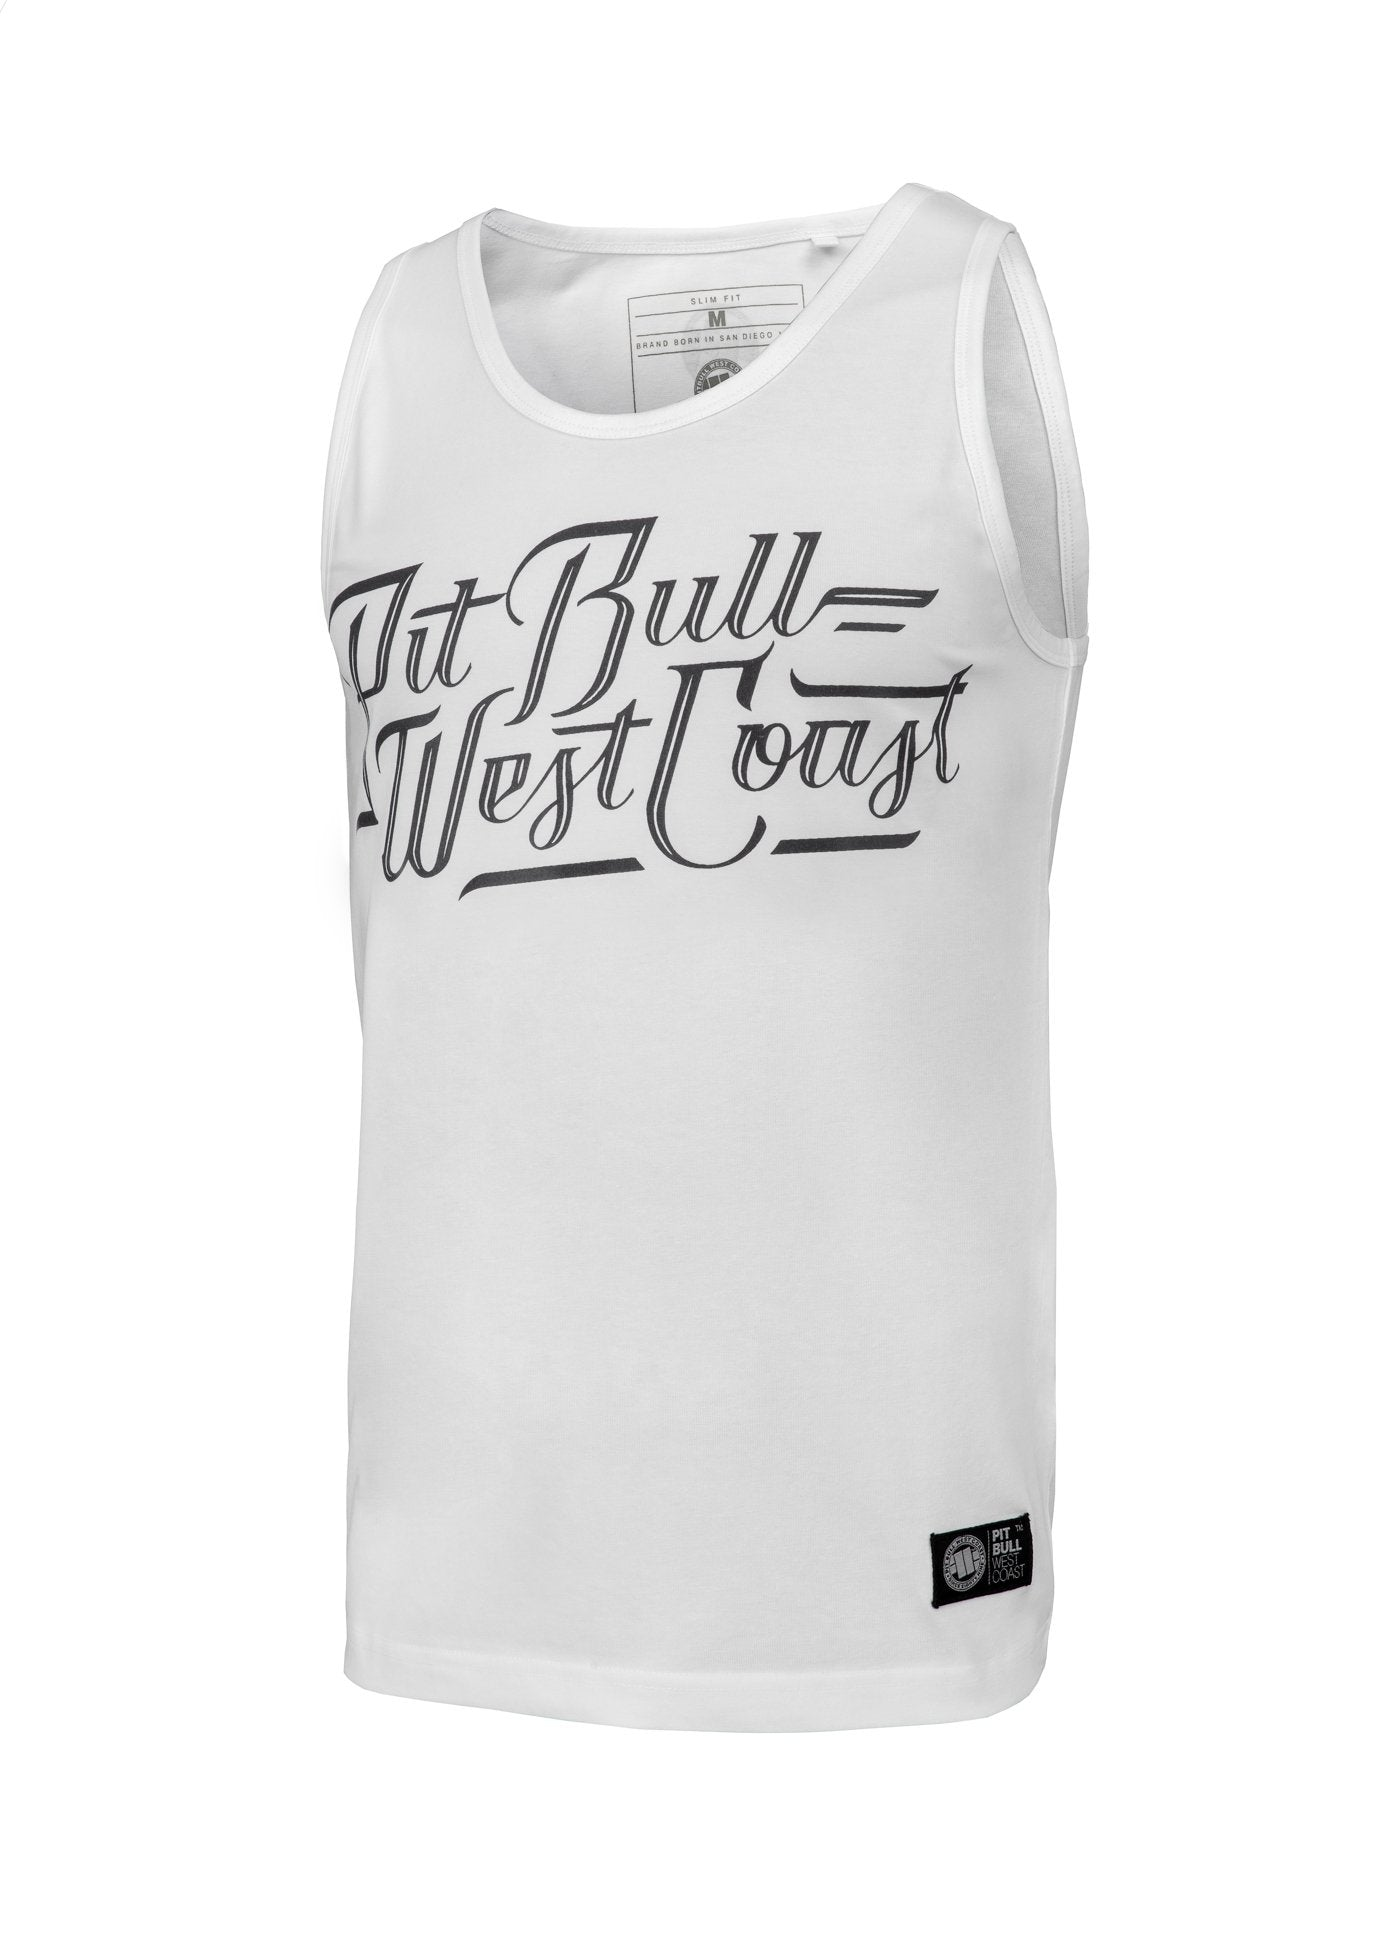 Tank Top Slim Fit Speed White - Pitbull West Coast U.S.A.